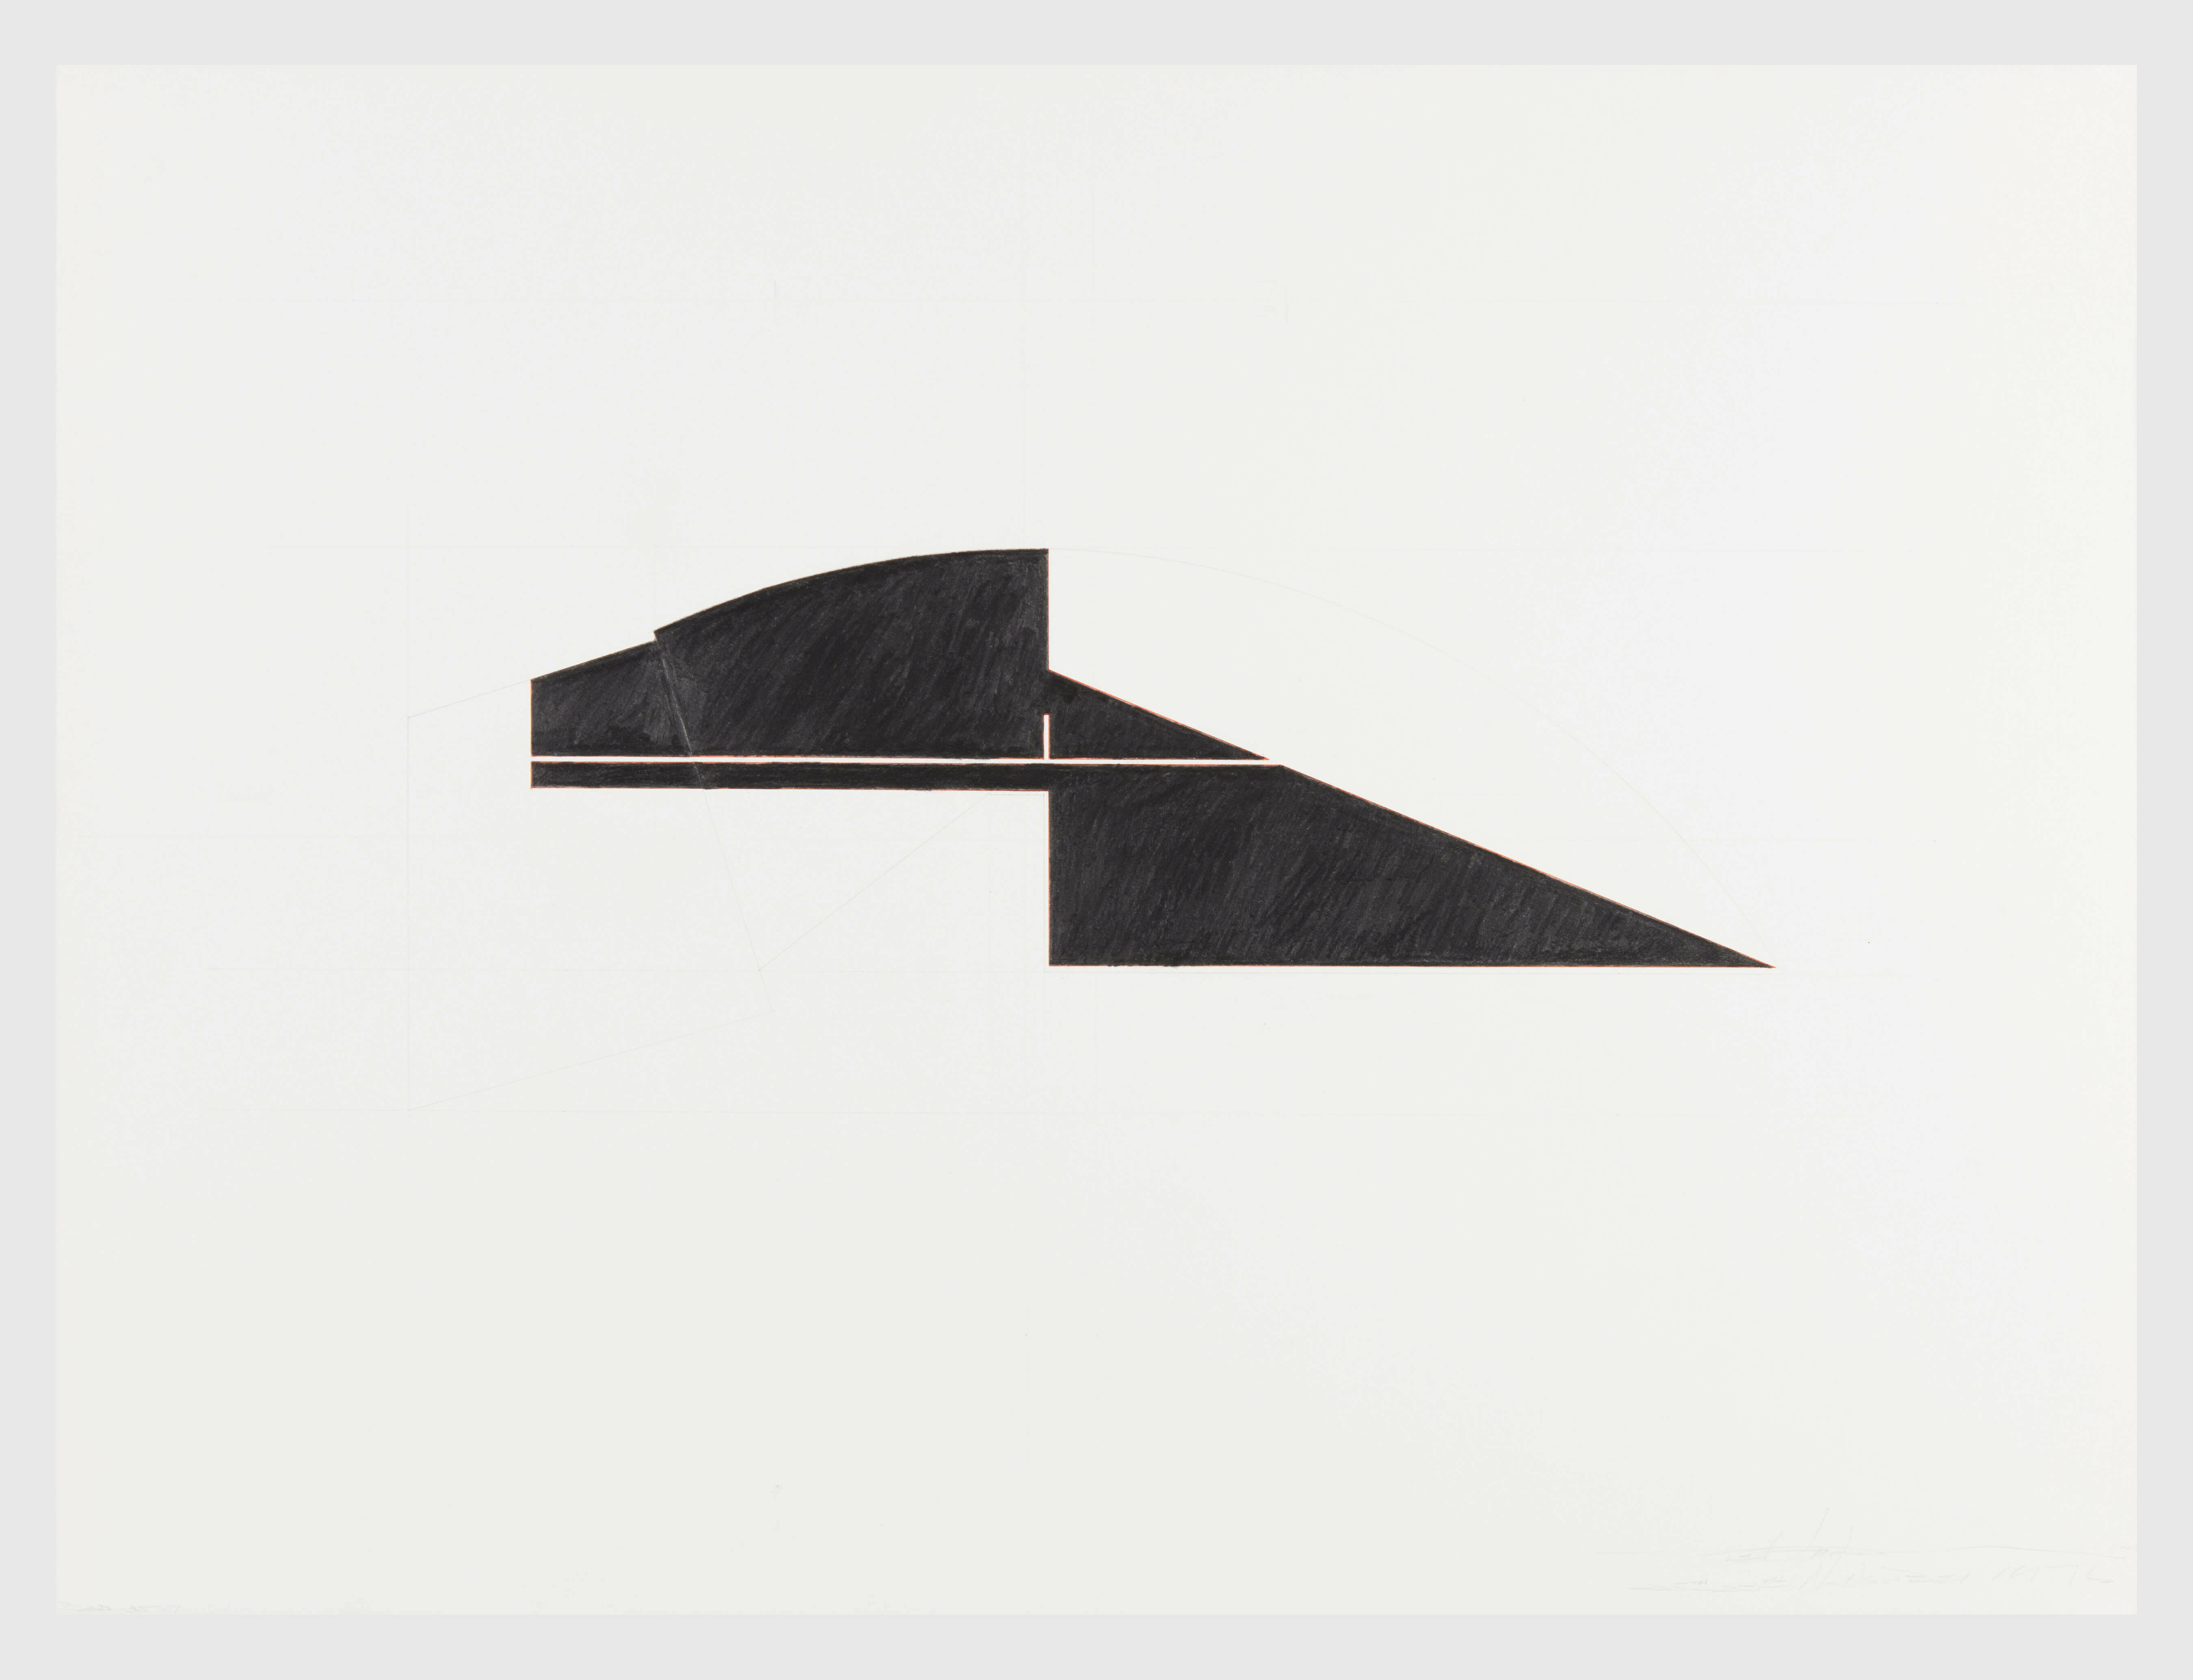 Ted Stamm works on paper at Art Gallery of Western Australia